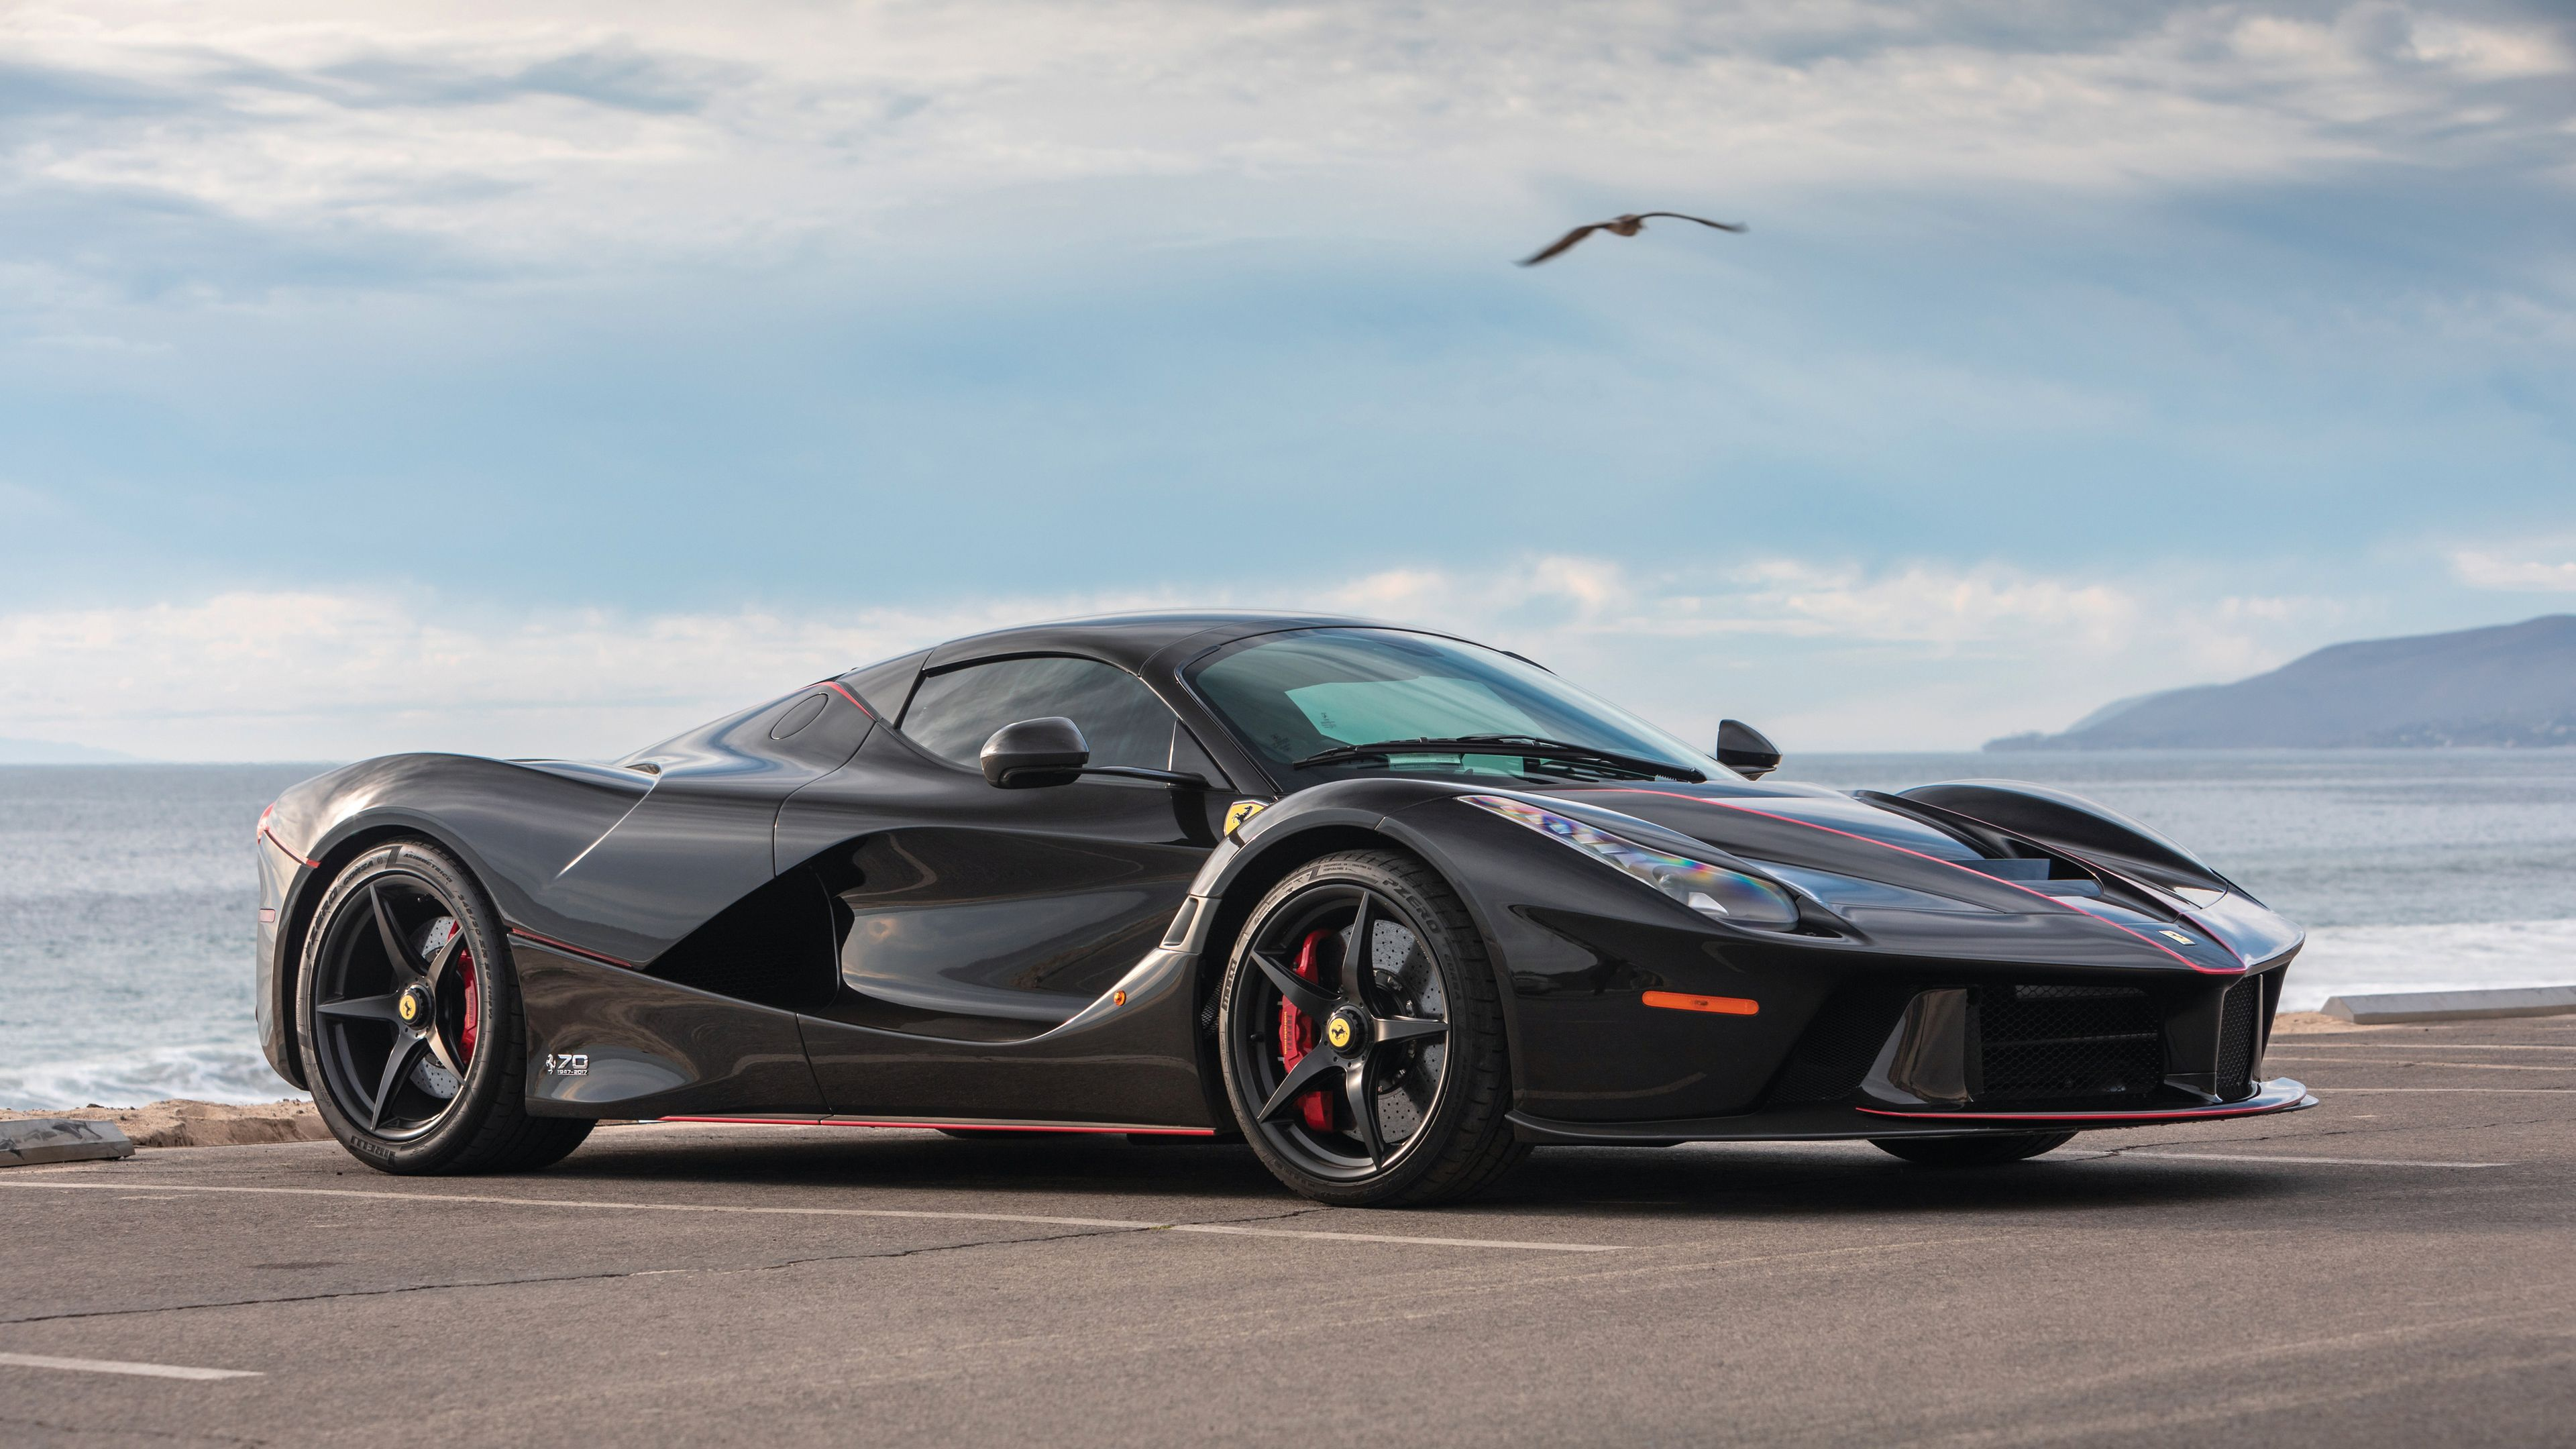 LaFerrari Aperta 4k laferrari wallpapers, hd-wallpapers, ferrari wallpapers, car…